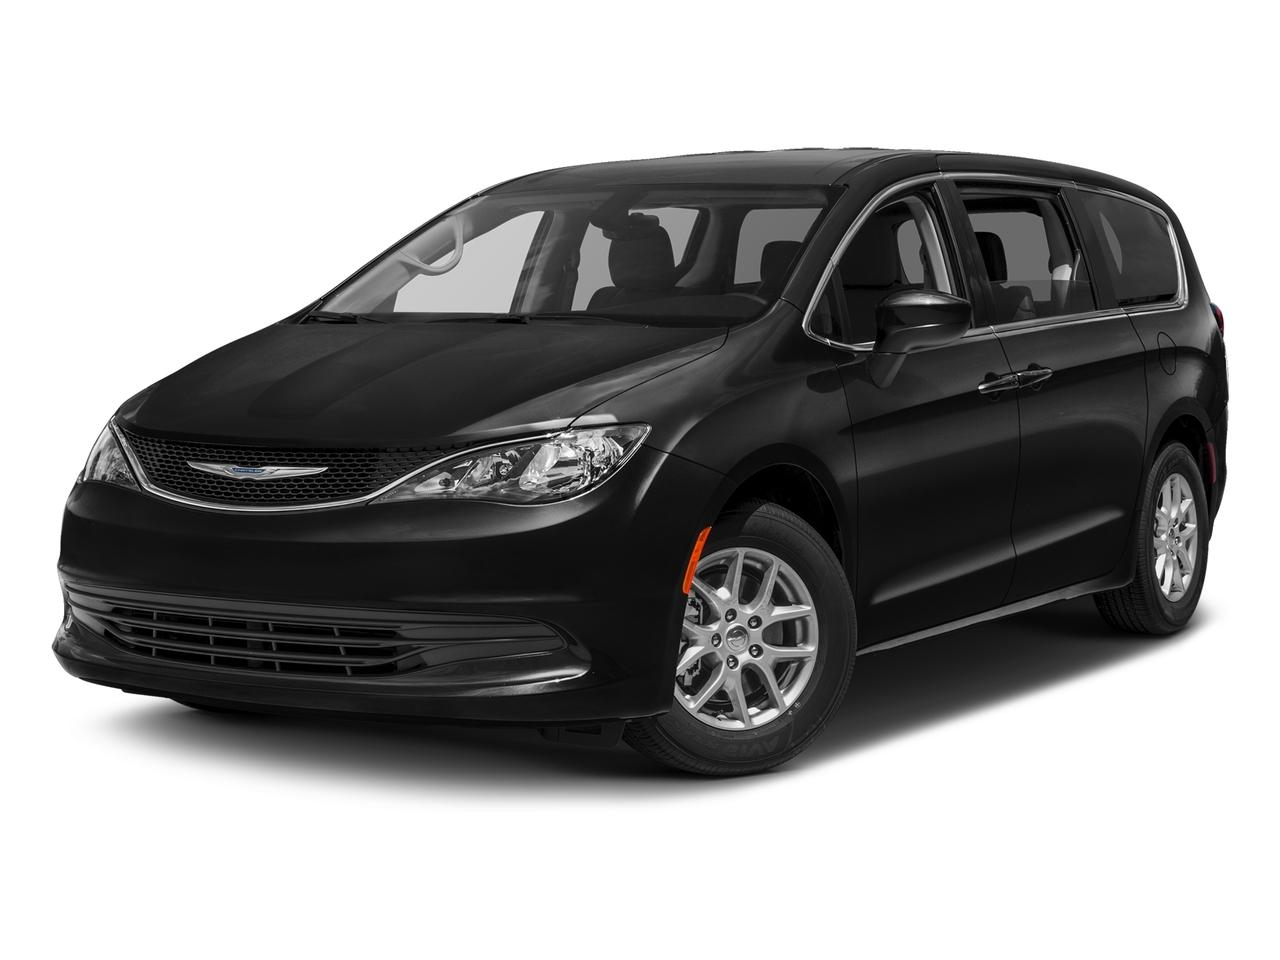 2017 Chrysler Pacifica Vehicle Photo in Peoria, IL 61615